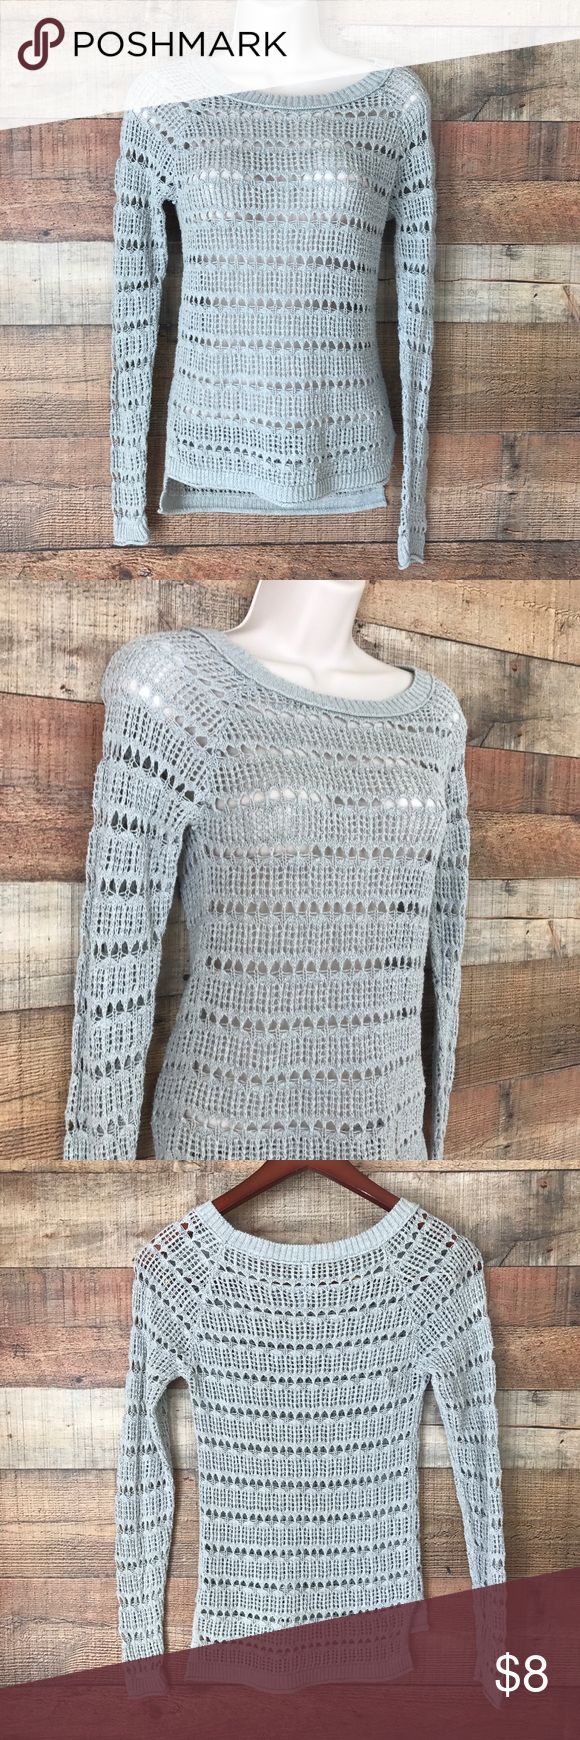 """Aeropostale XS Open Weave Summer Gray Sweater Gray Open Weave Summer Sweater Great Coverup too!  Pit to pit measures 15""""Shoulders 16"""" Sleeves Length 27"""" Length 25-27"""" Aeropostale Sweaters"""